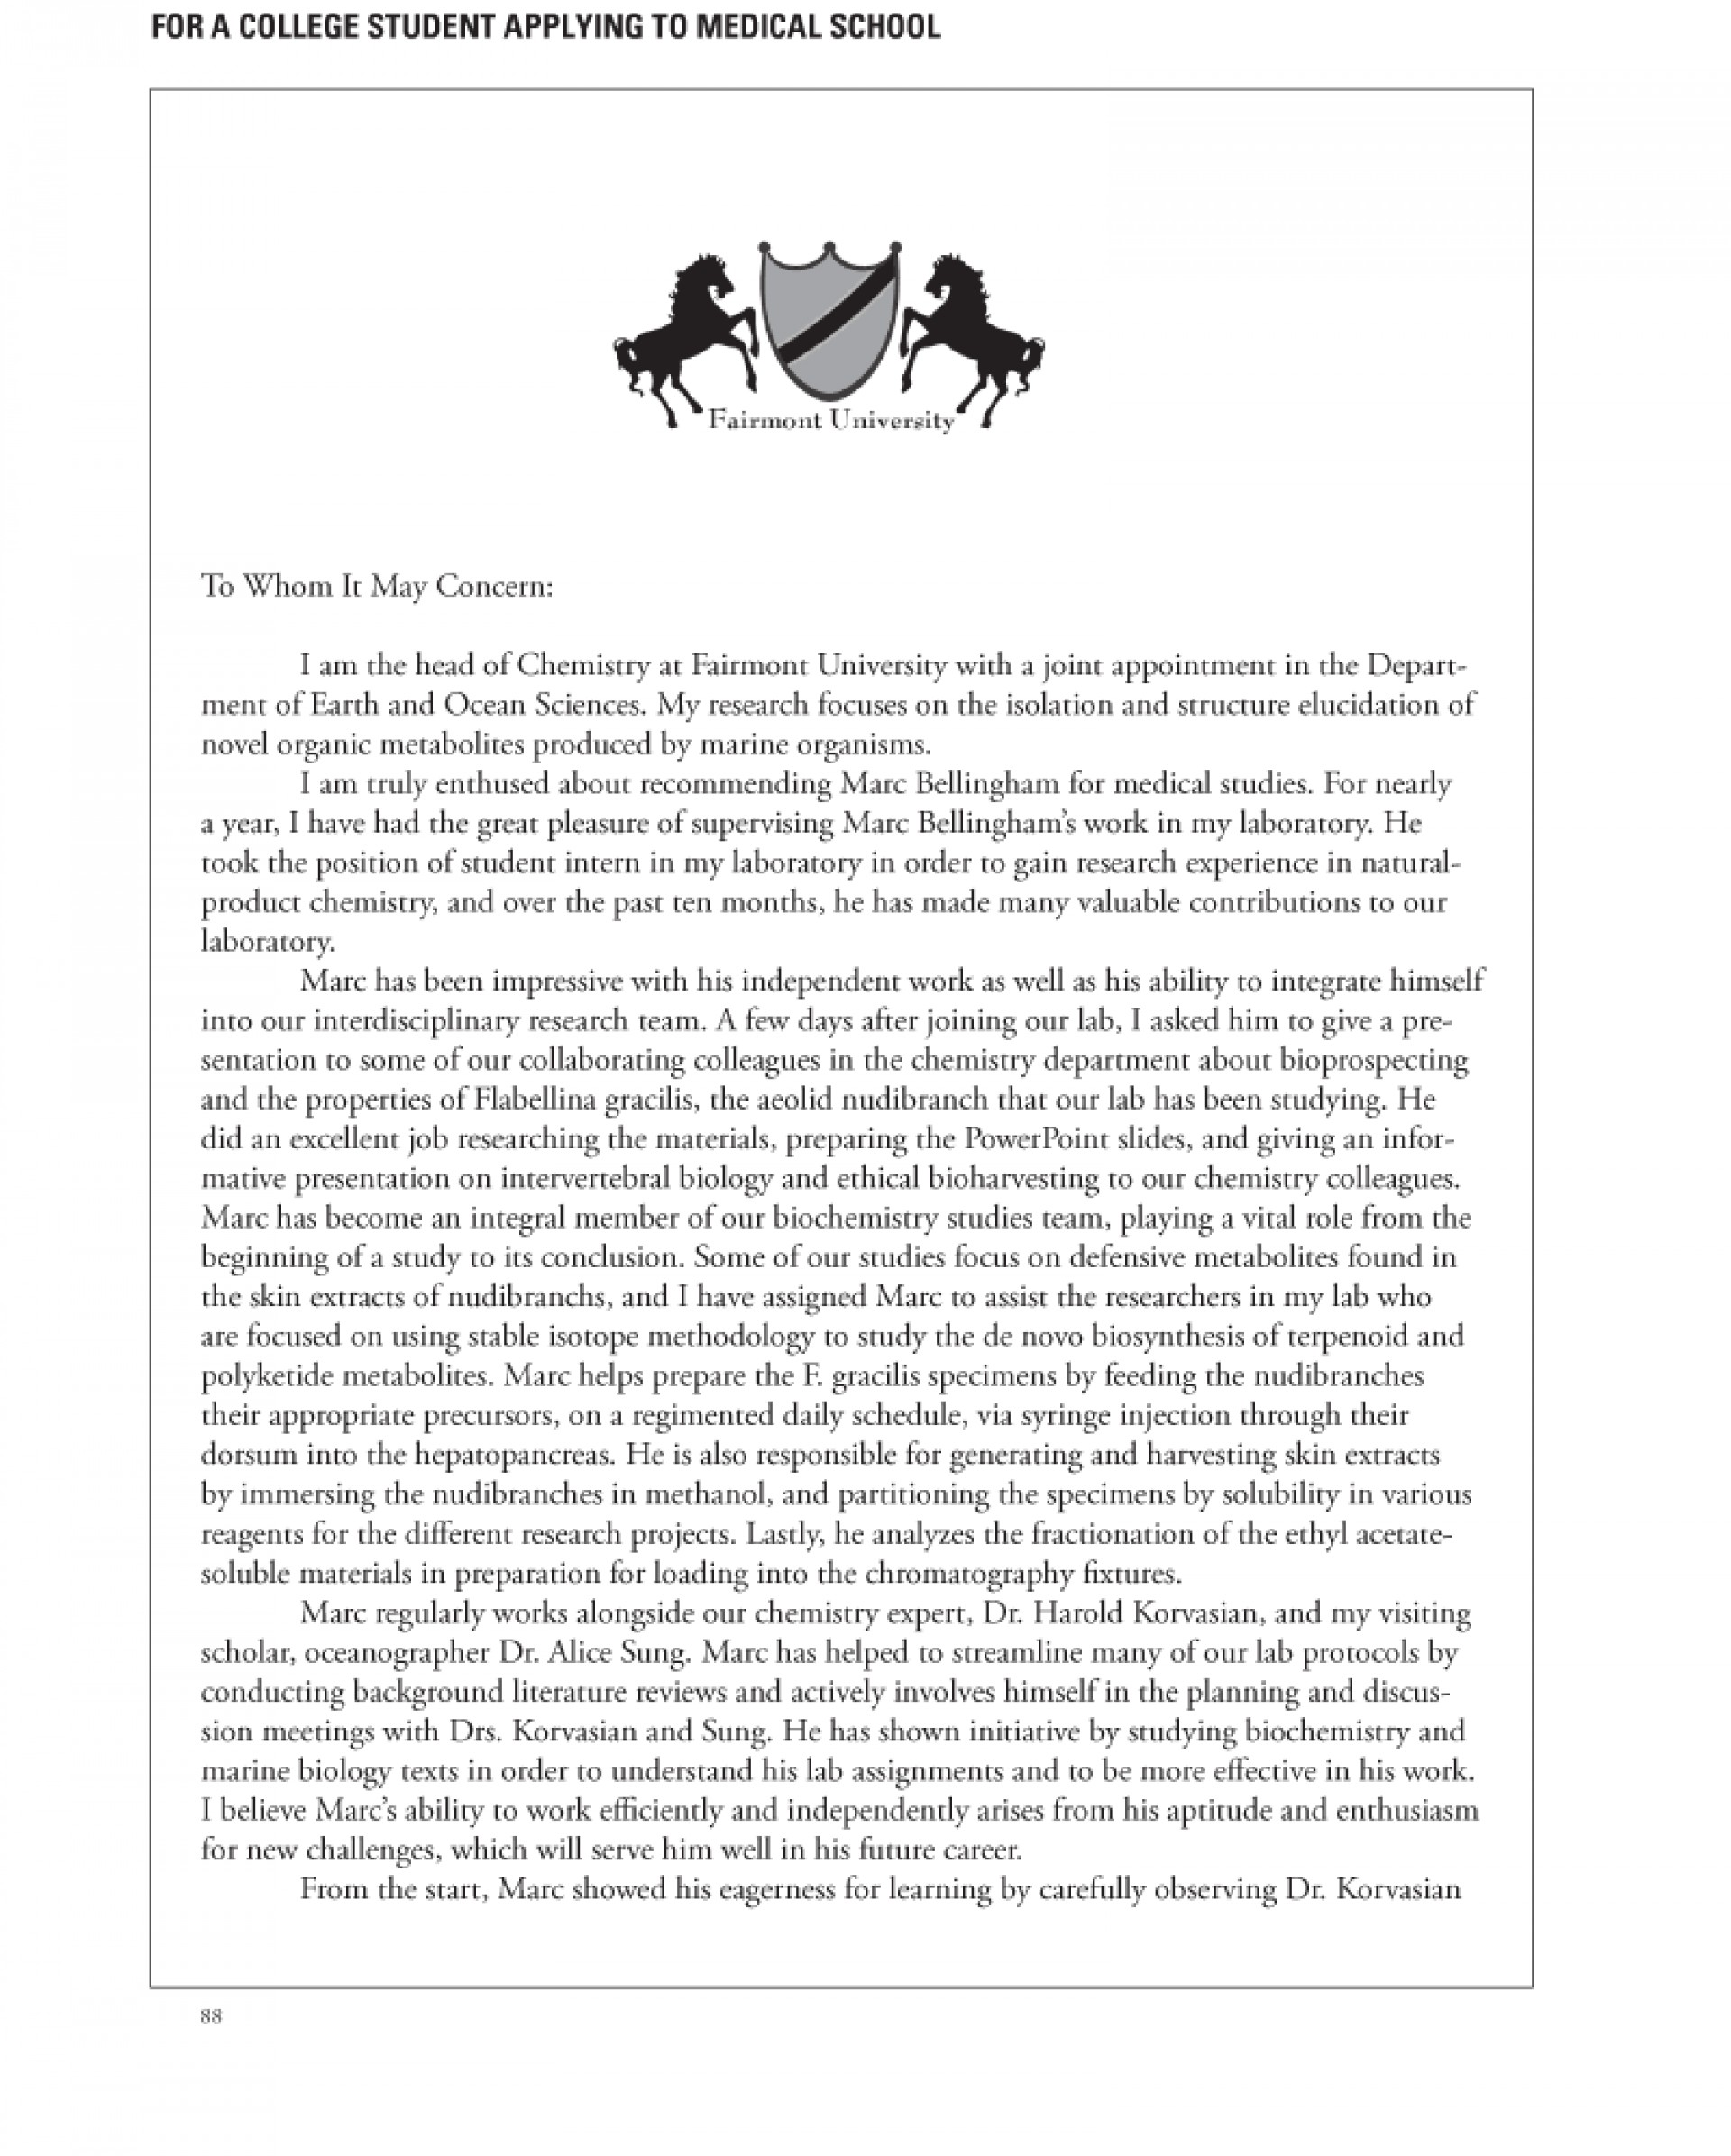 017 Satire Essays Letter Of Recommendation Sample 1resize8002c997 Essay Fearsome Satirical Topics For High School Examples On Gun Control 1920